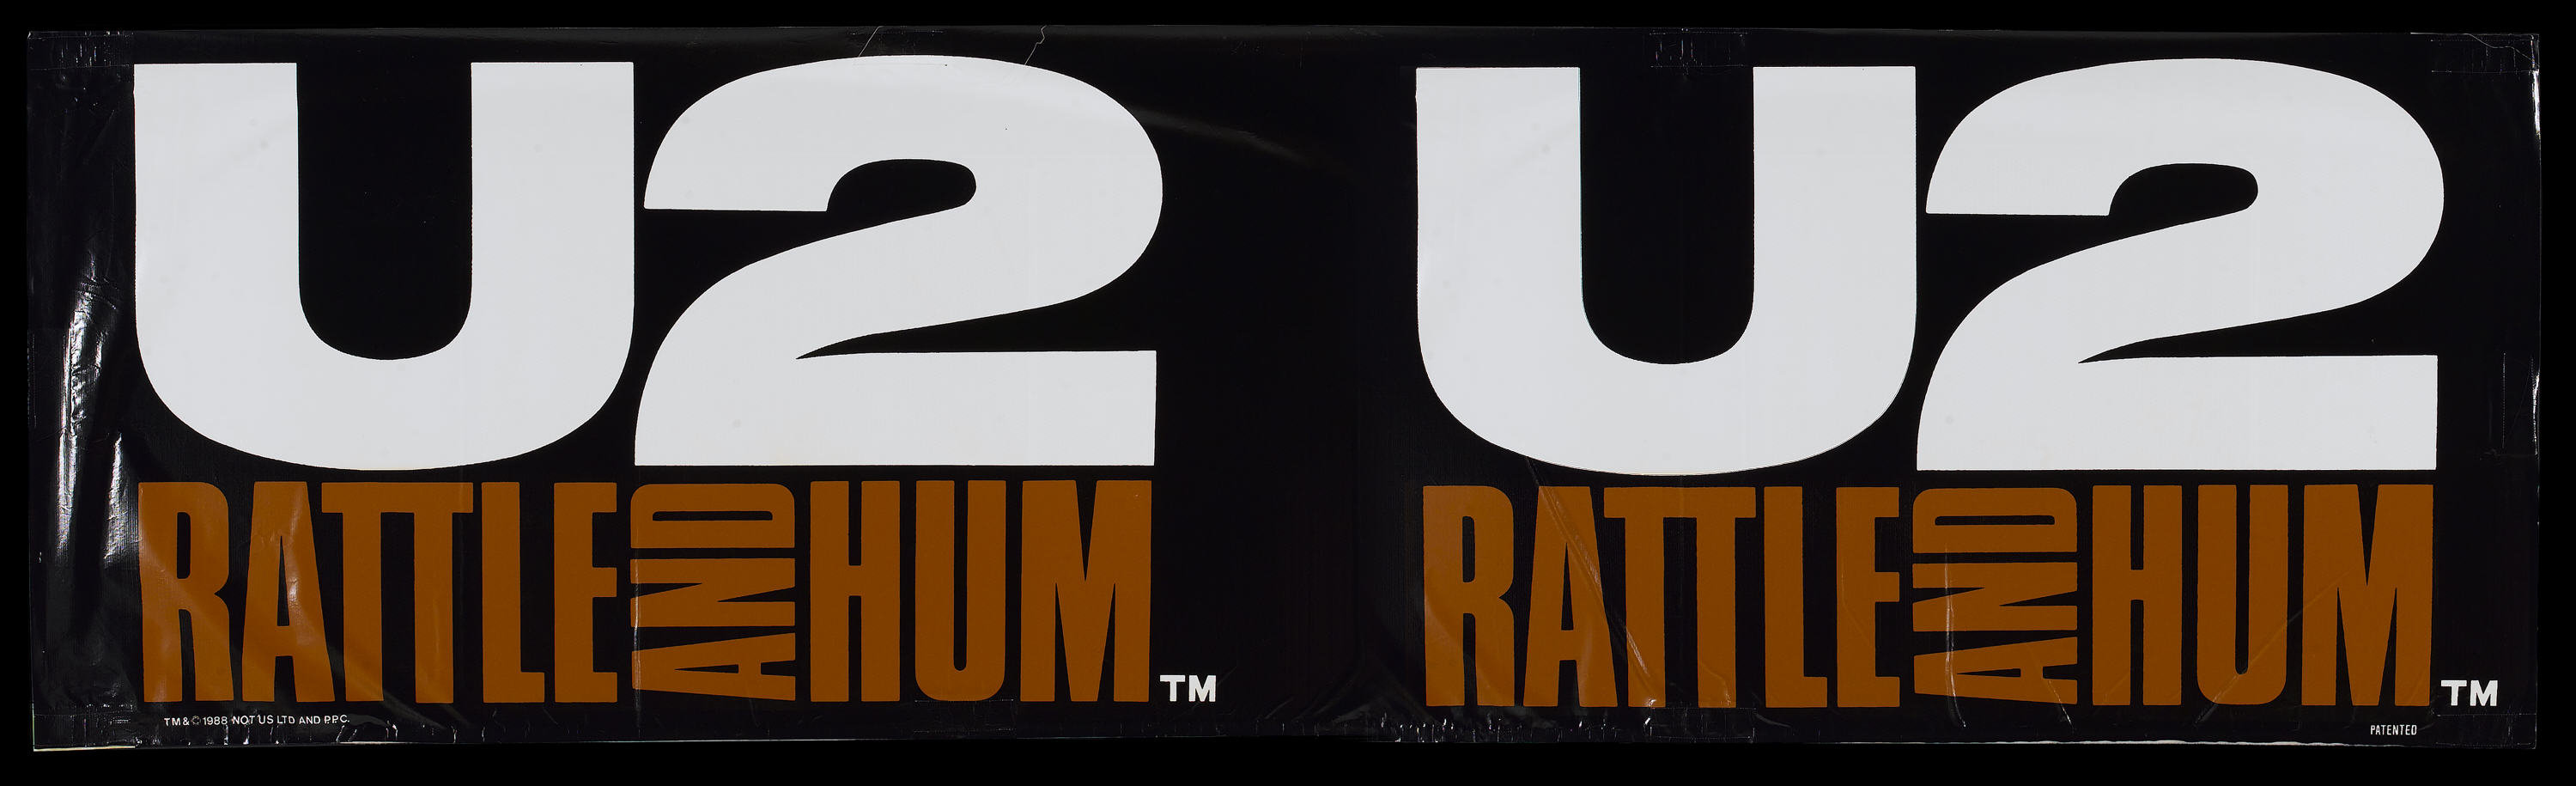 U2: Rattle and Hum (Paramount, 1988)  Vinyl Banner (34